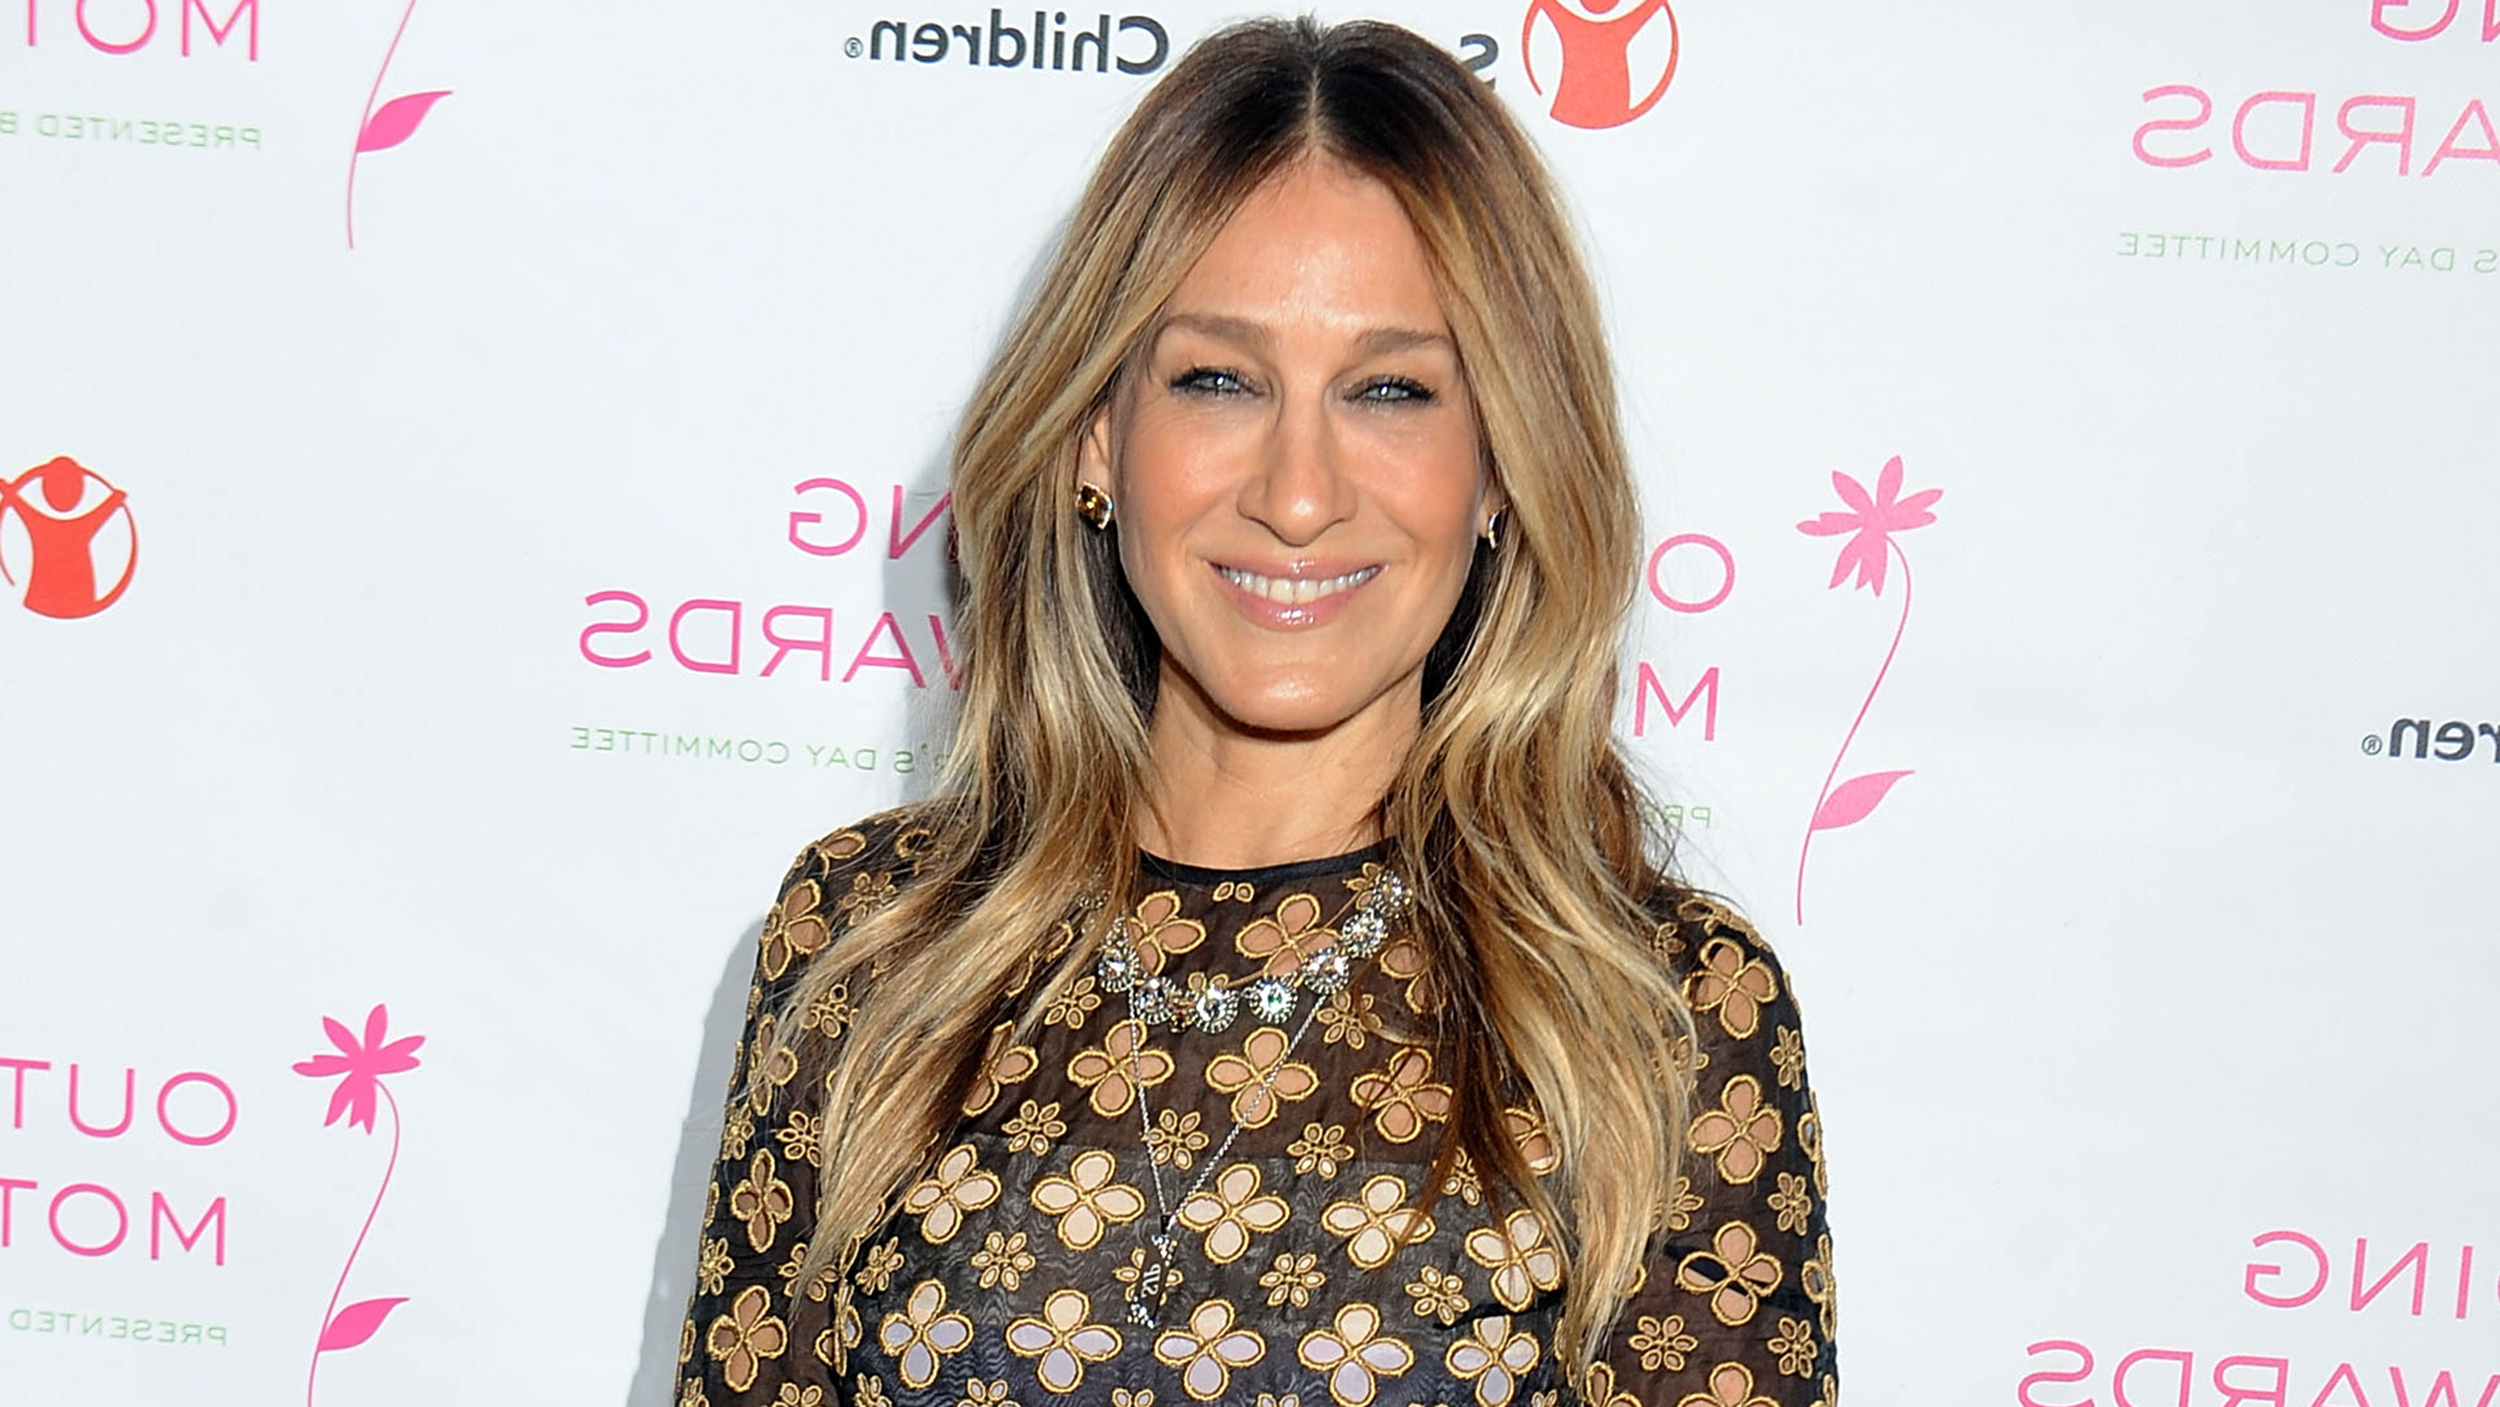 Sarah Jessica Parker's Hair Is A Platinum Blond Bob Now With Regard To Sarah Jessica Parker Short Hairstyles (View 22 of 25)